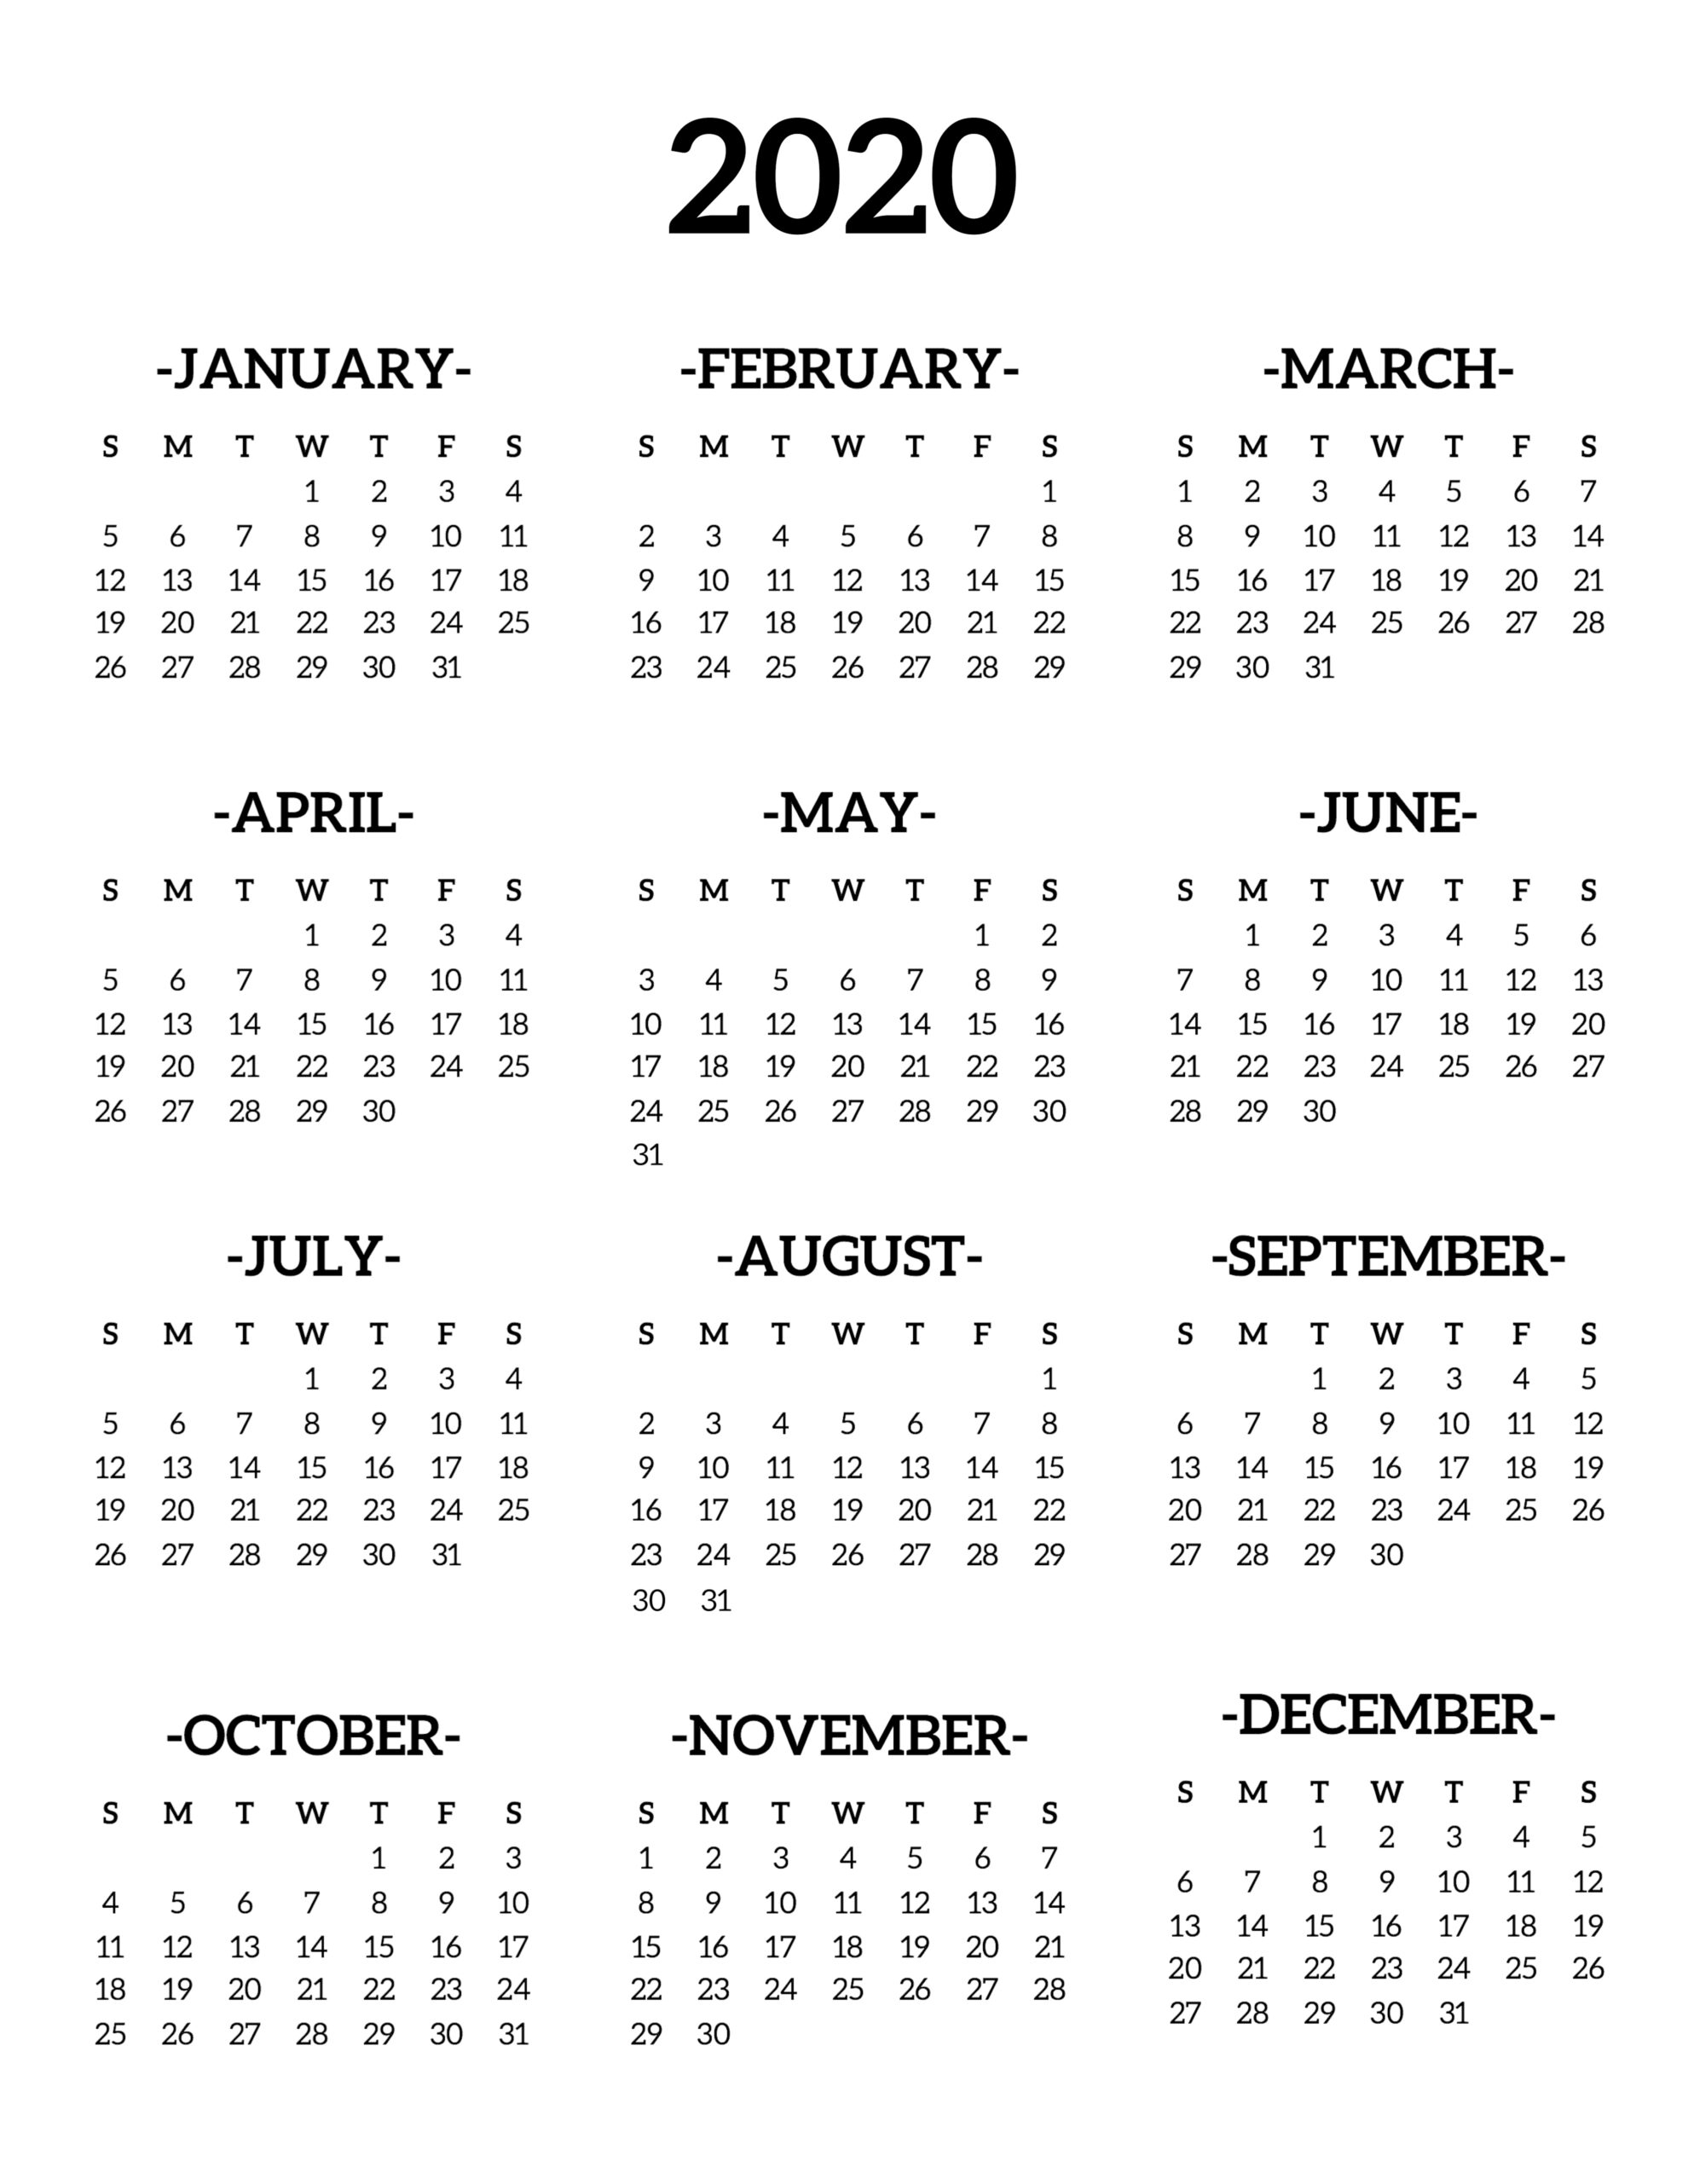 Calendar 2020 Printable One Page - Paper Trail Design